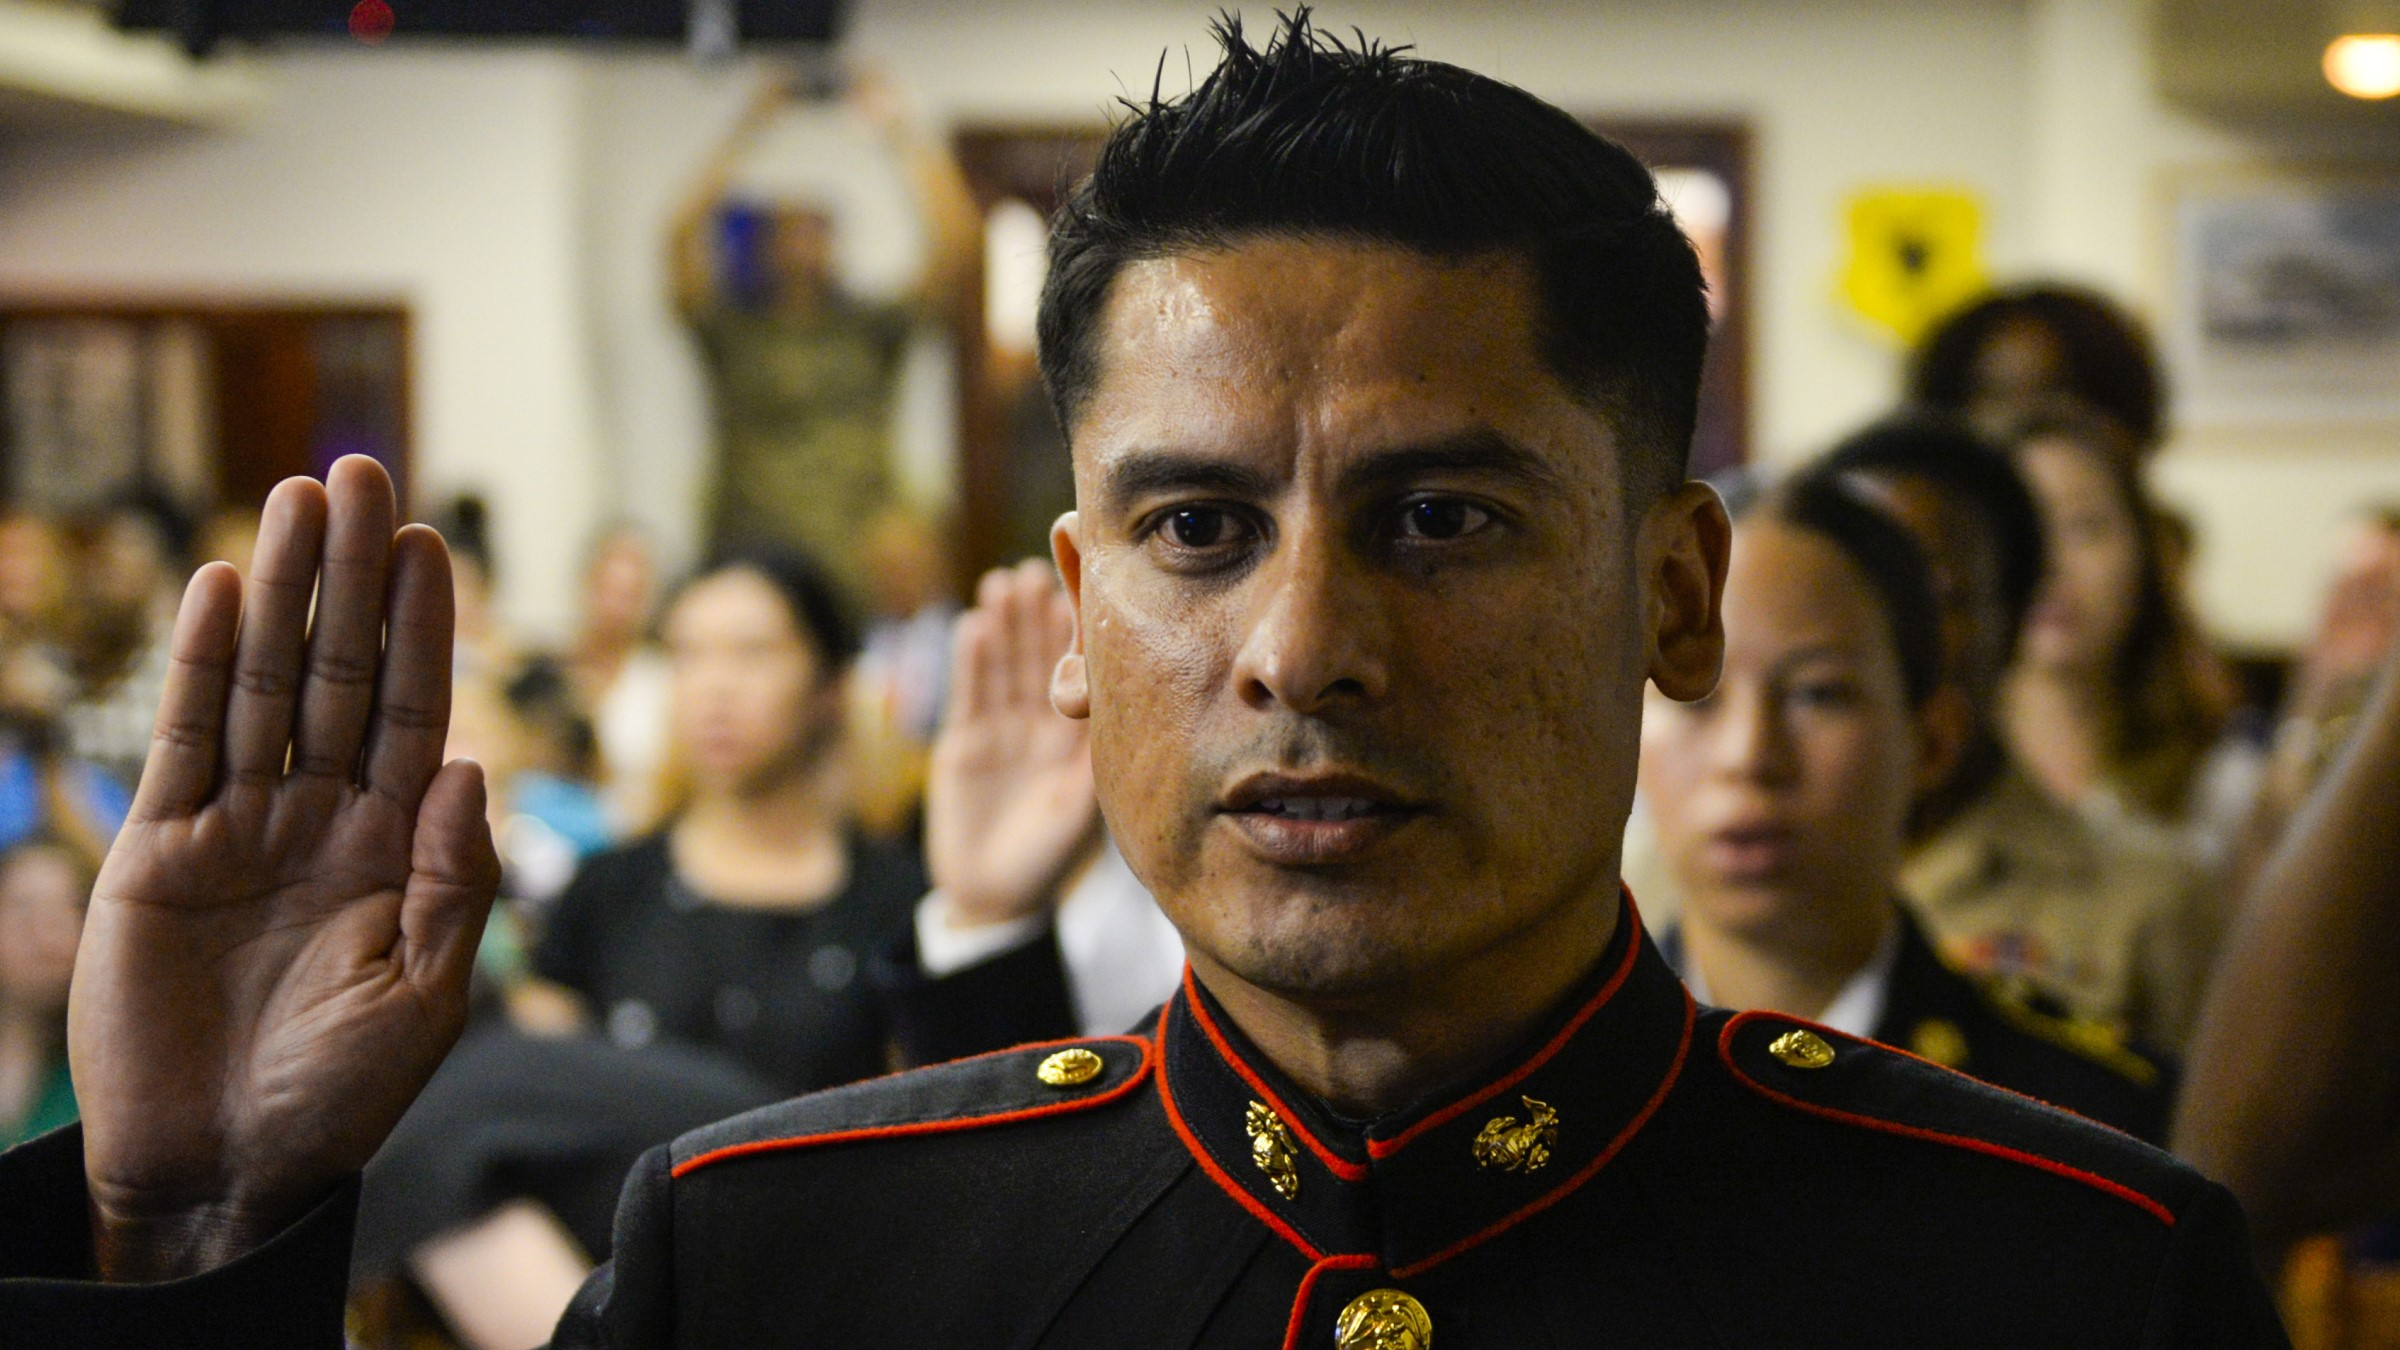 Marine Corps Staff Sgt. takes the oath of allegiance at a U.S. Naturalization ceremony at Kadena Air Base in Japan